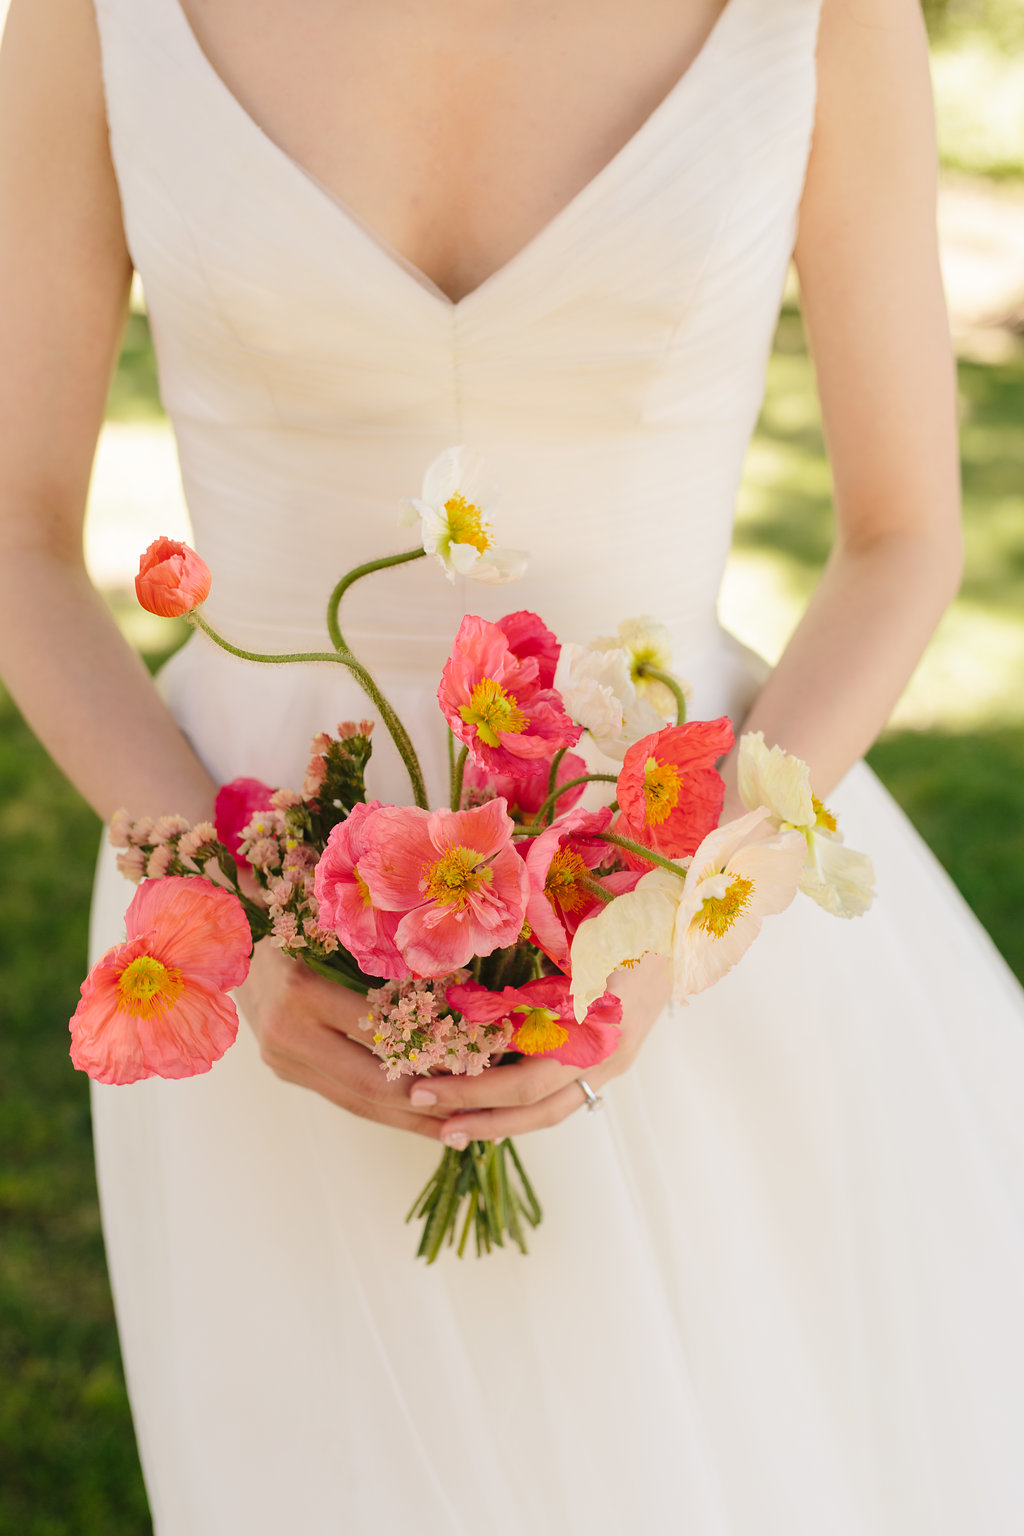 Late Spring Poppy Bouquet by Lambert Floral Studio for a Wine Country Wedding at Scribe Winery- Simone Anne Photography - CakeBloom - Sonoma, CA